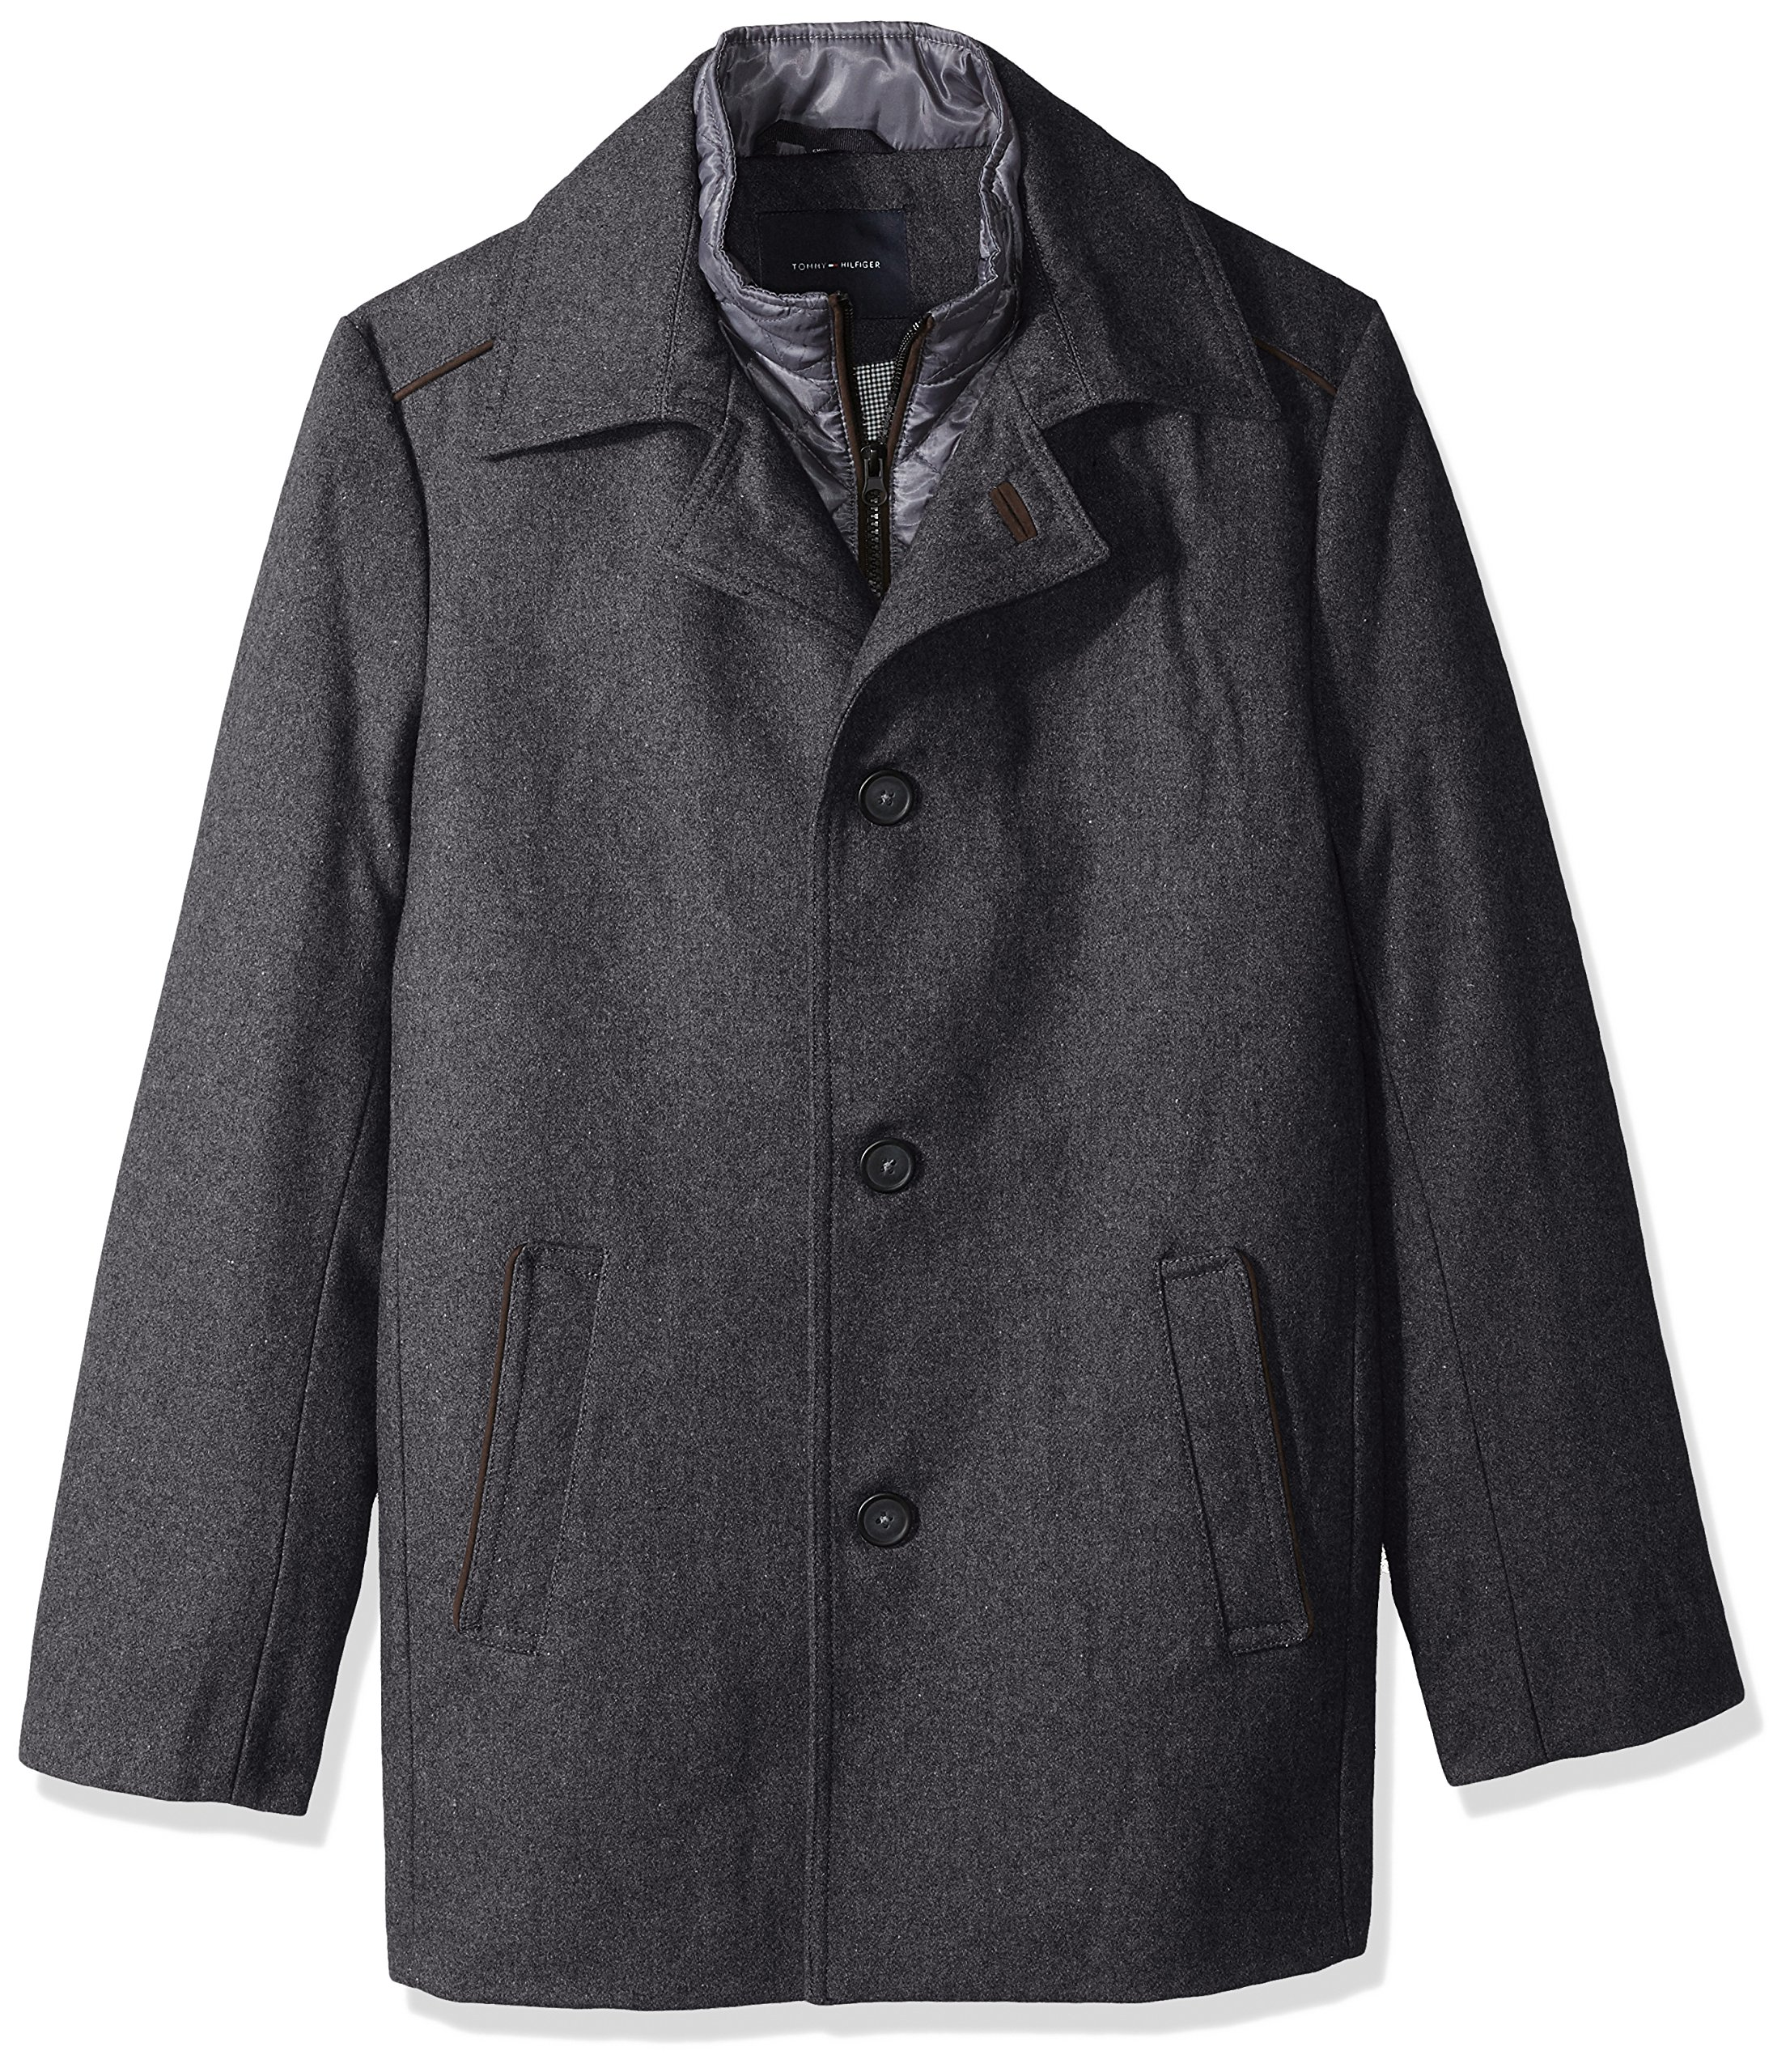 Tommy Hilfiger Men's Briggs 32 inch Top Coat with Quilted Bib, Charcoal, 38S